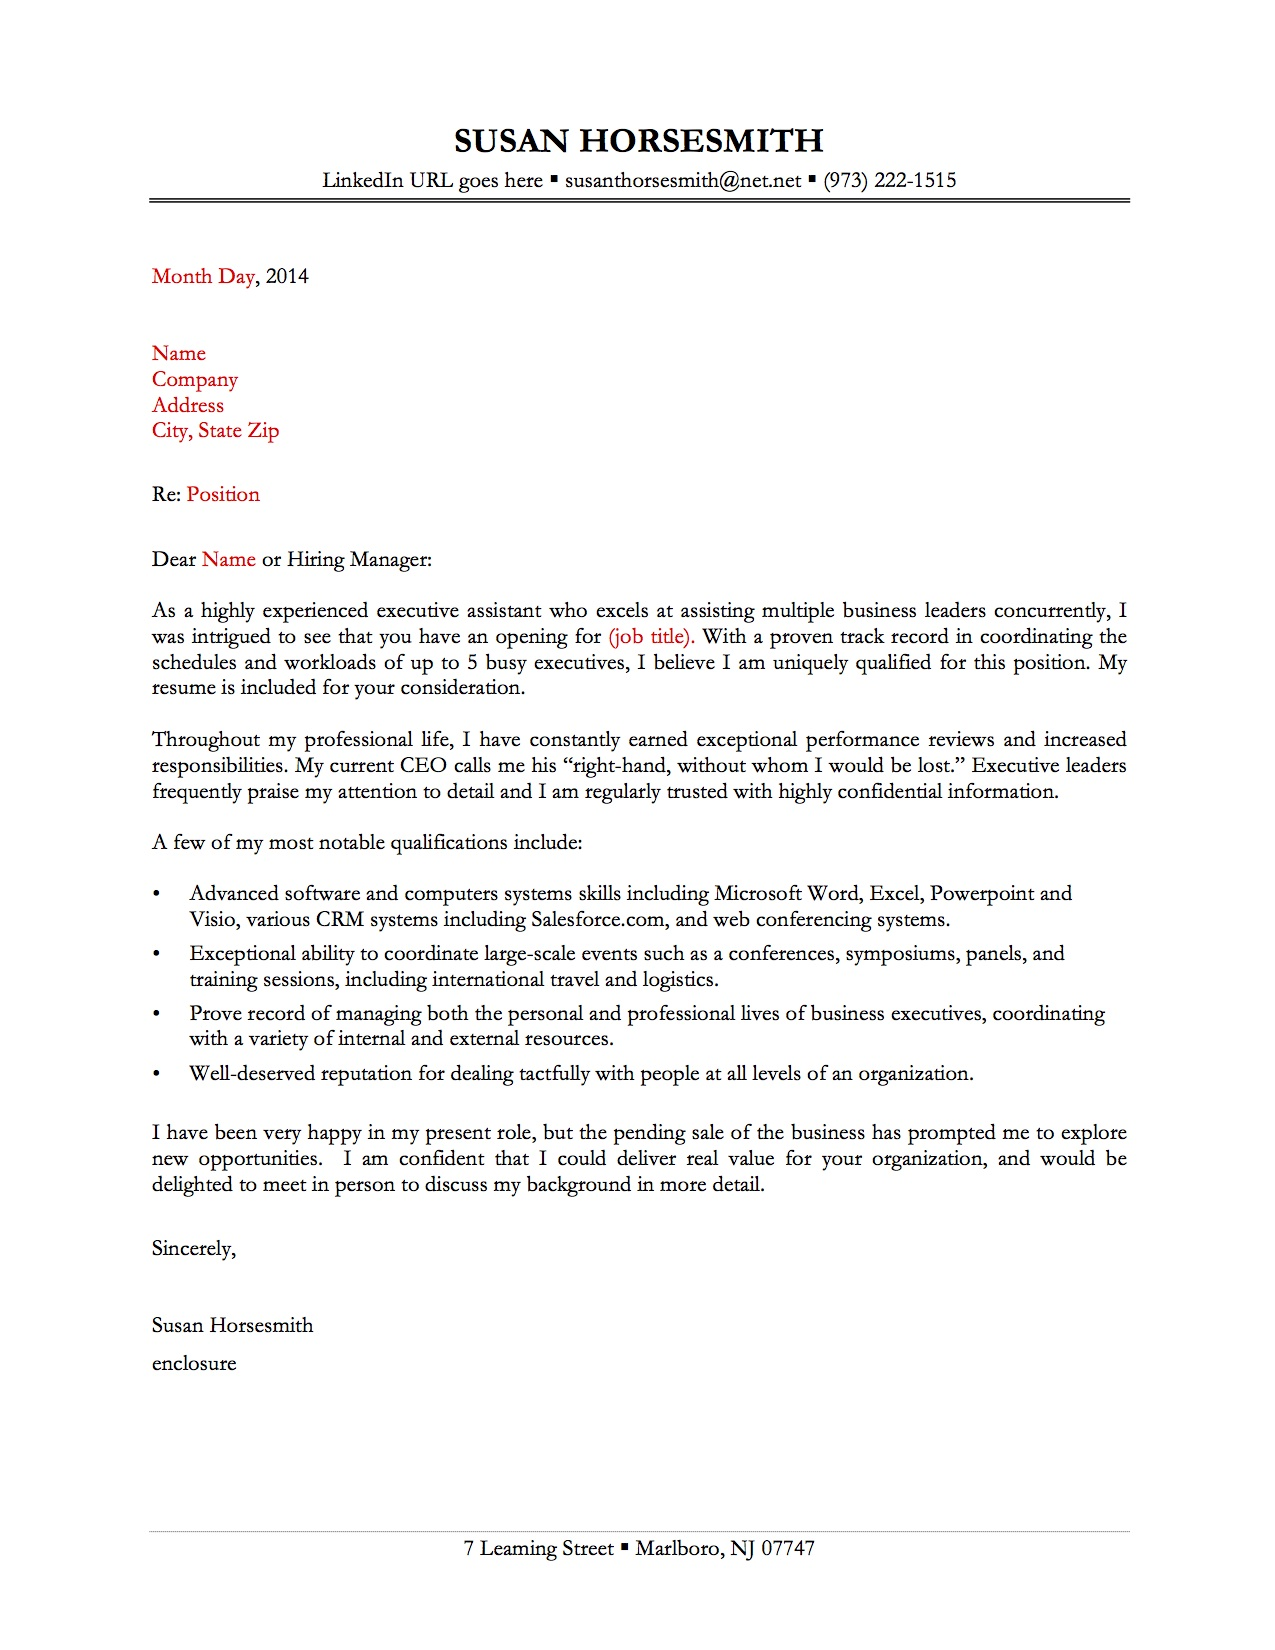 Examples Of Good Cover Letters For Resumes Two Great Cover Letter Examples Blue Sky Resumes Blog